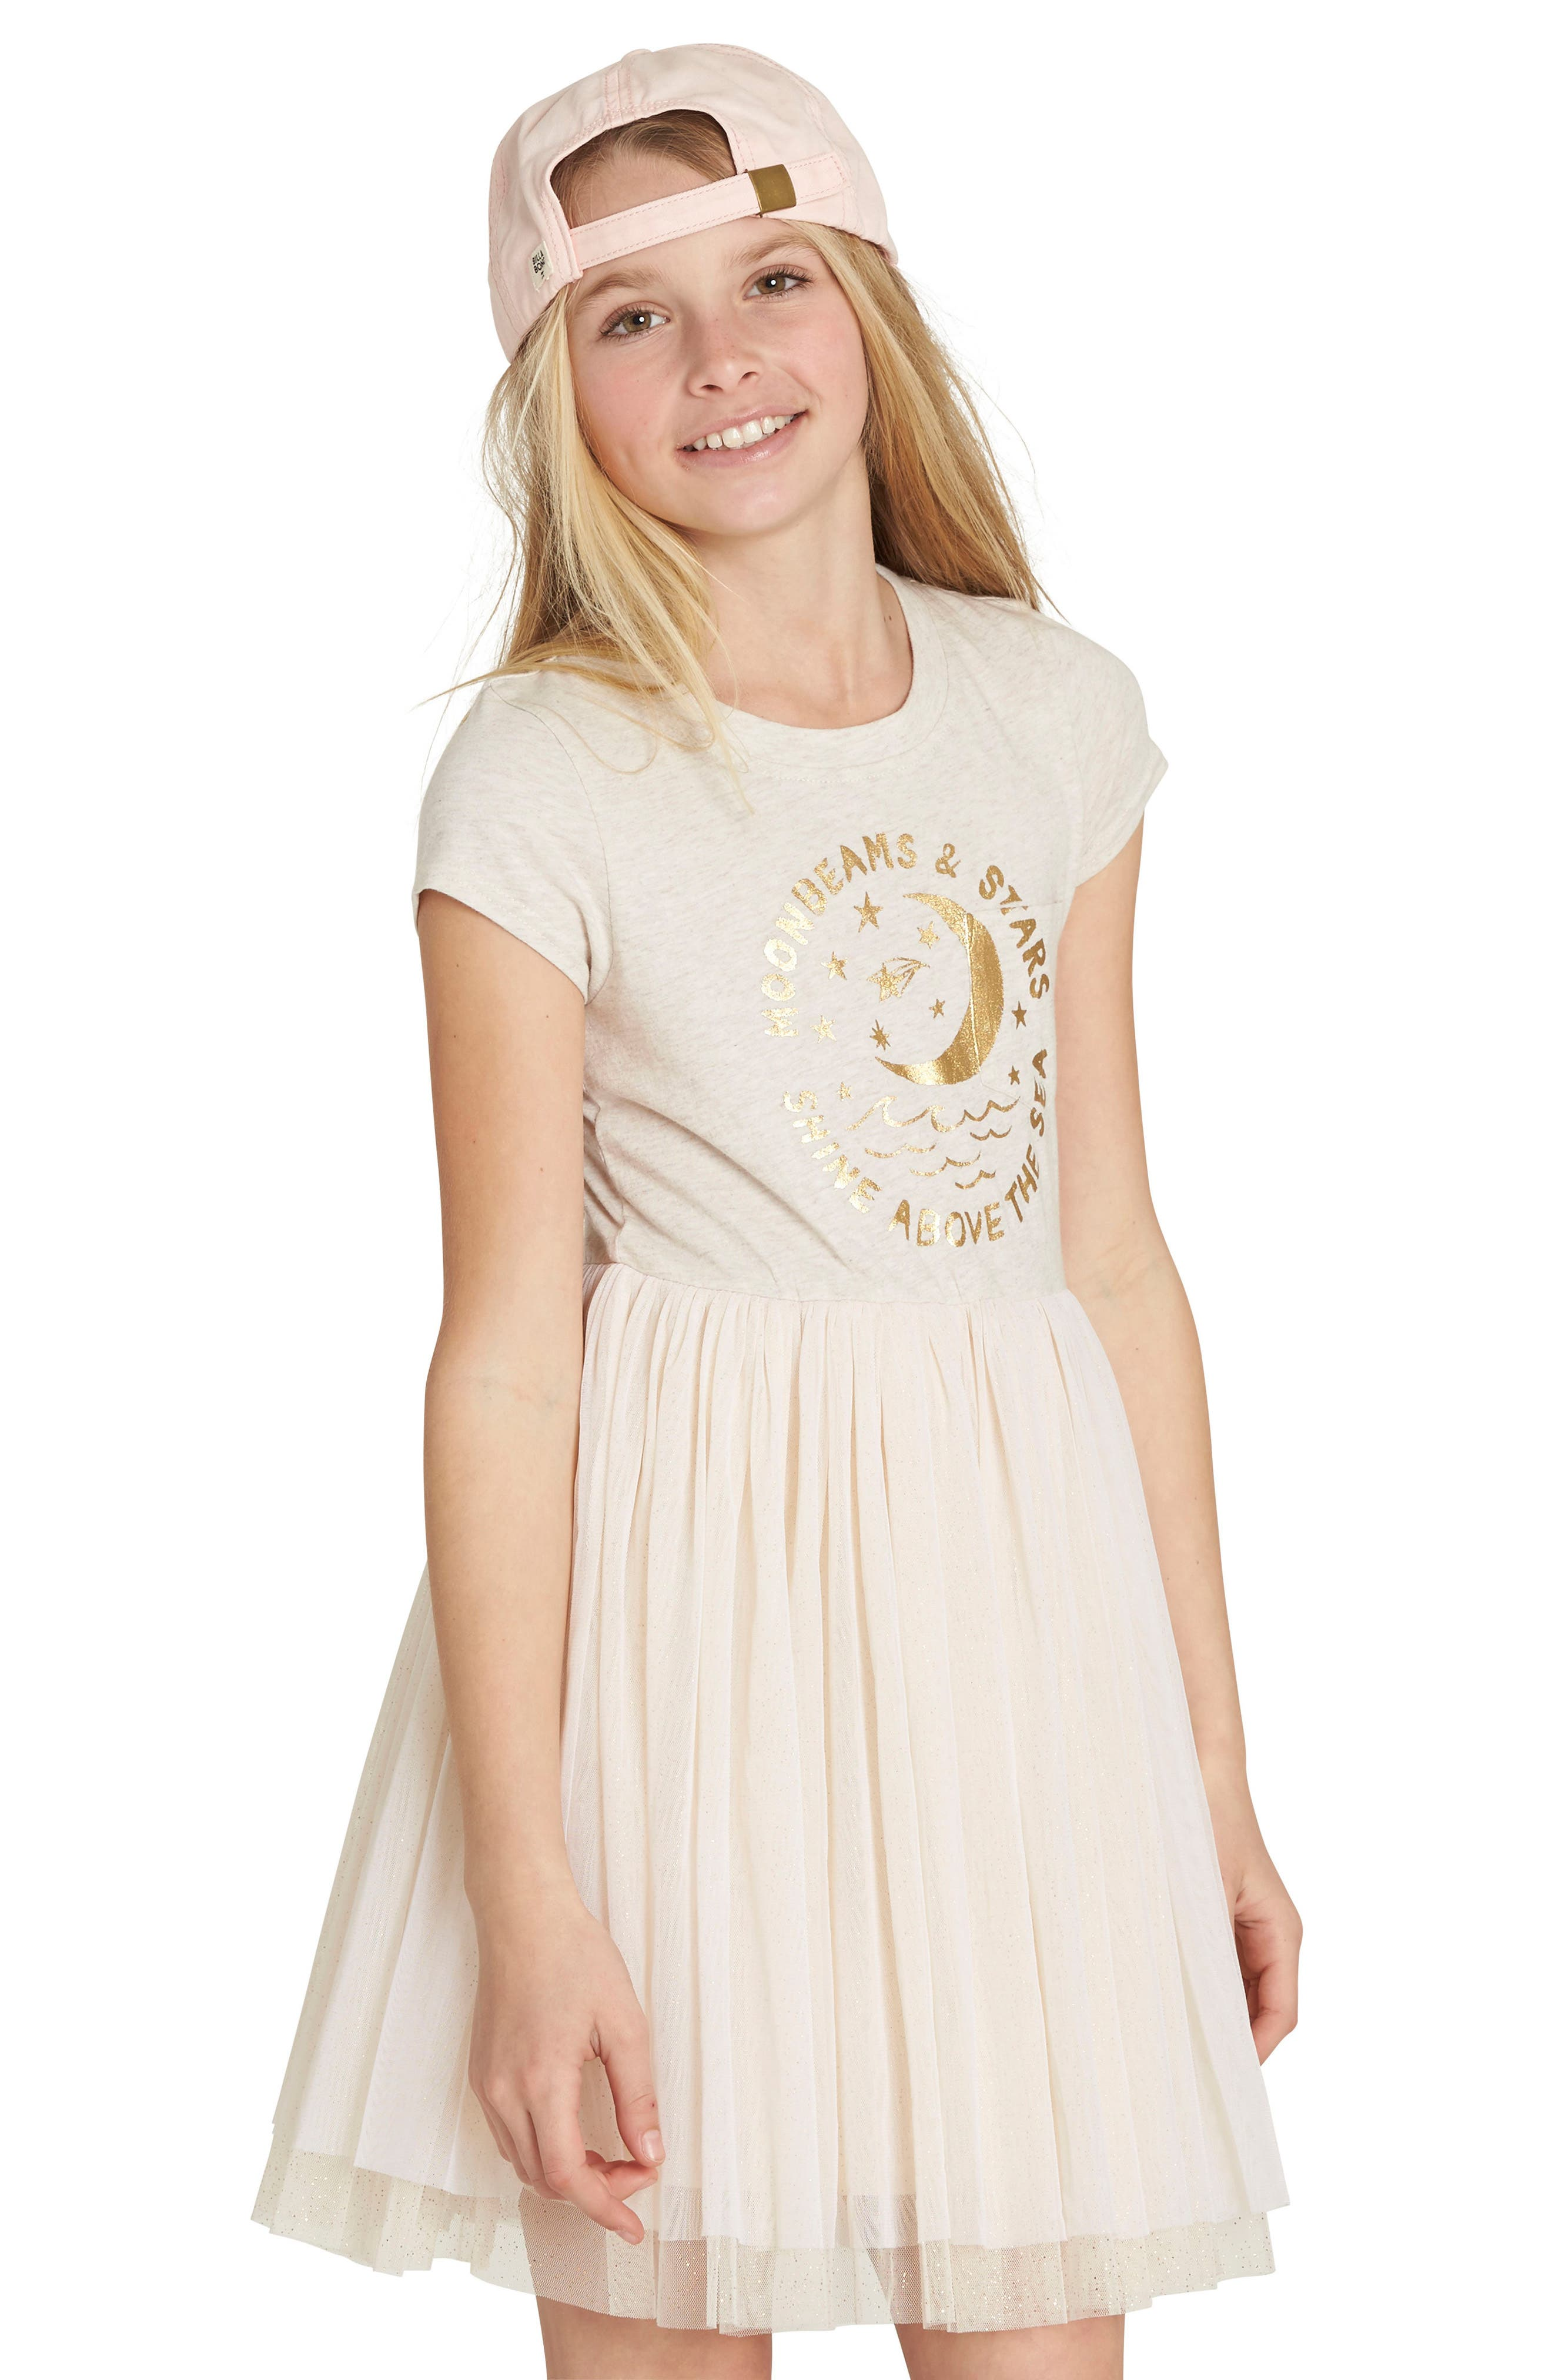 Billabong Sunkissed Nights Mixed Media Dress (Little Girls & Big Girls)